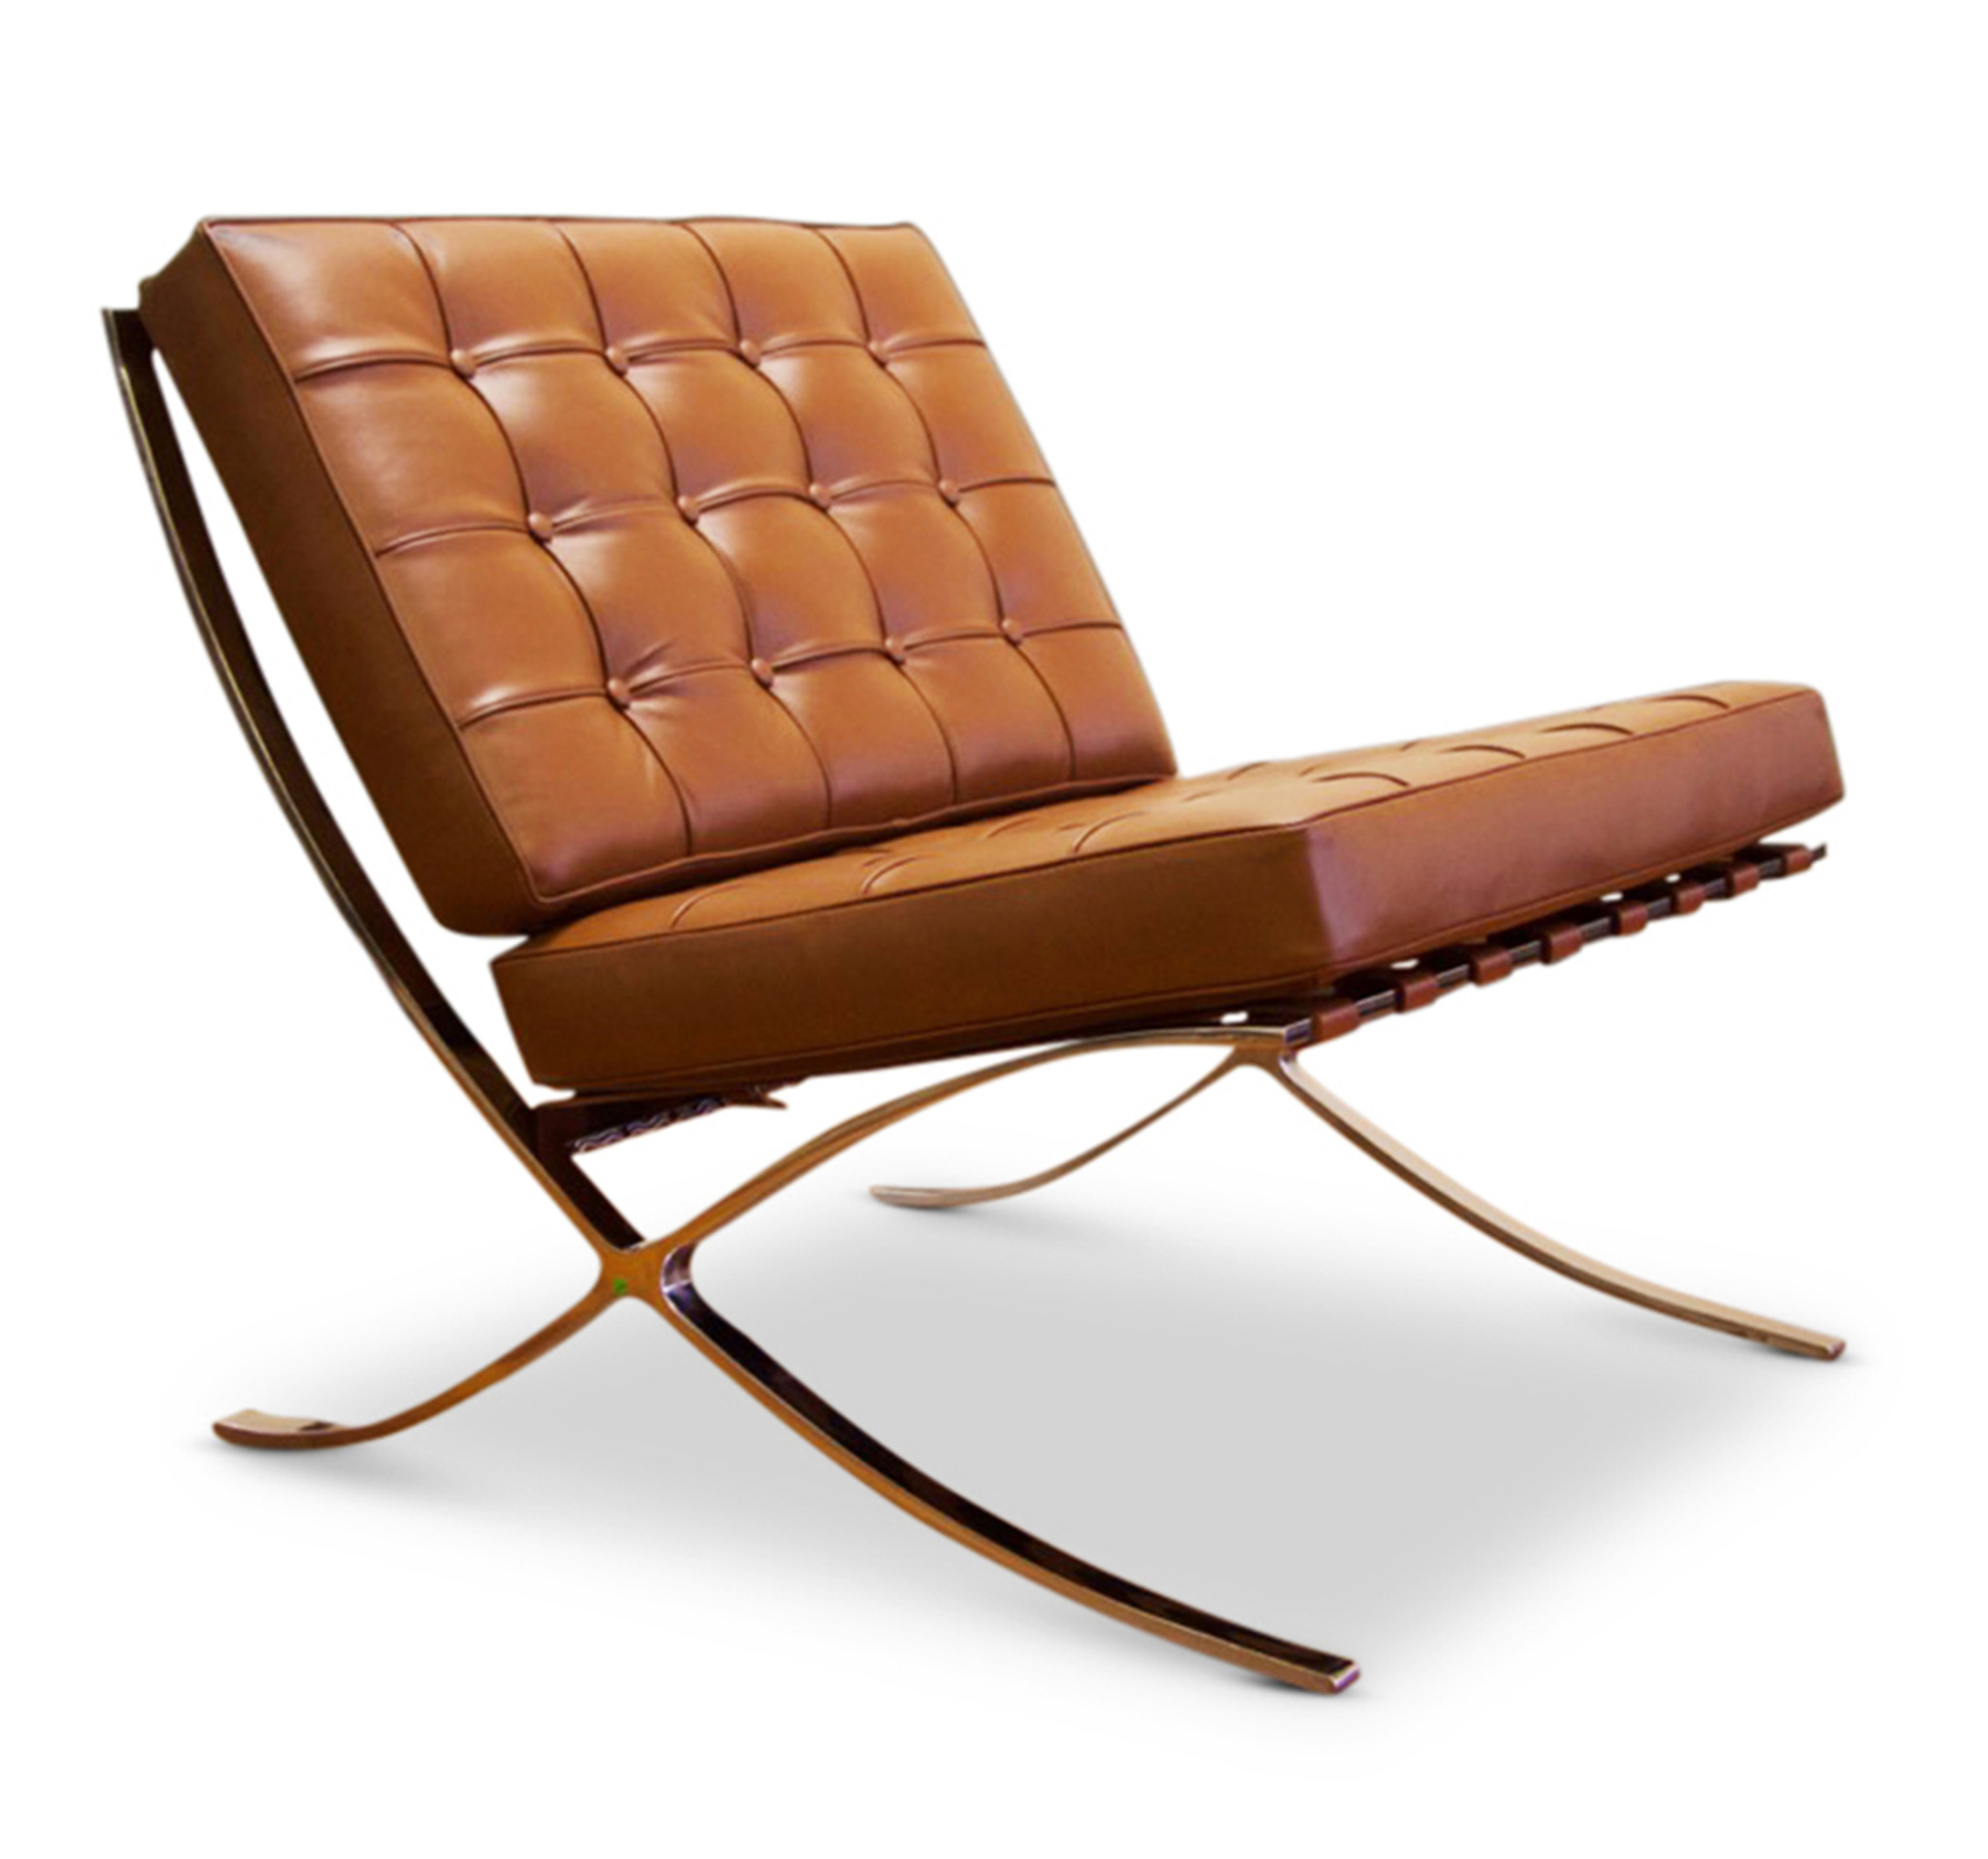 Excellent Barcelona Chair Saddle Creativecarmelina Interior Chair Design Creativecarmelinacom